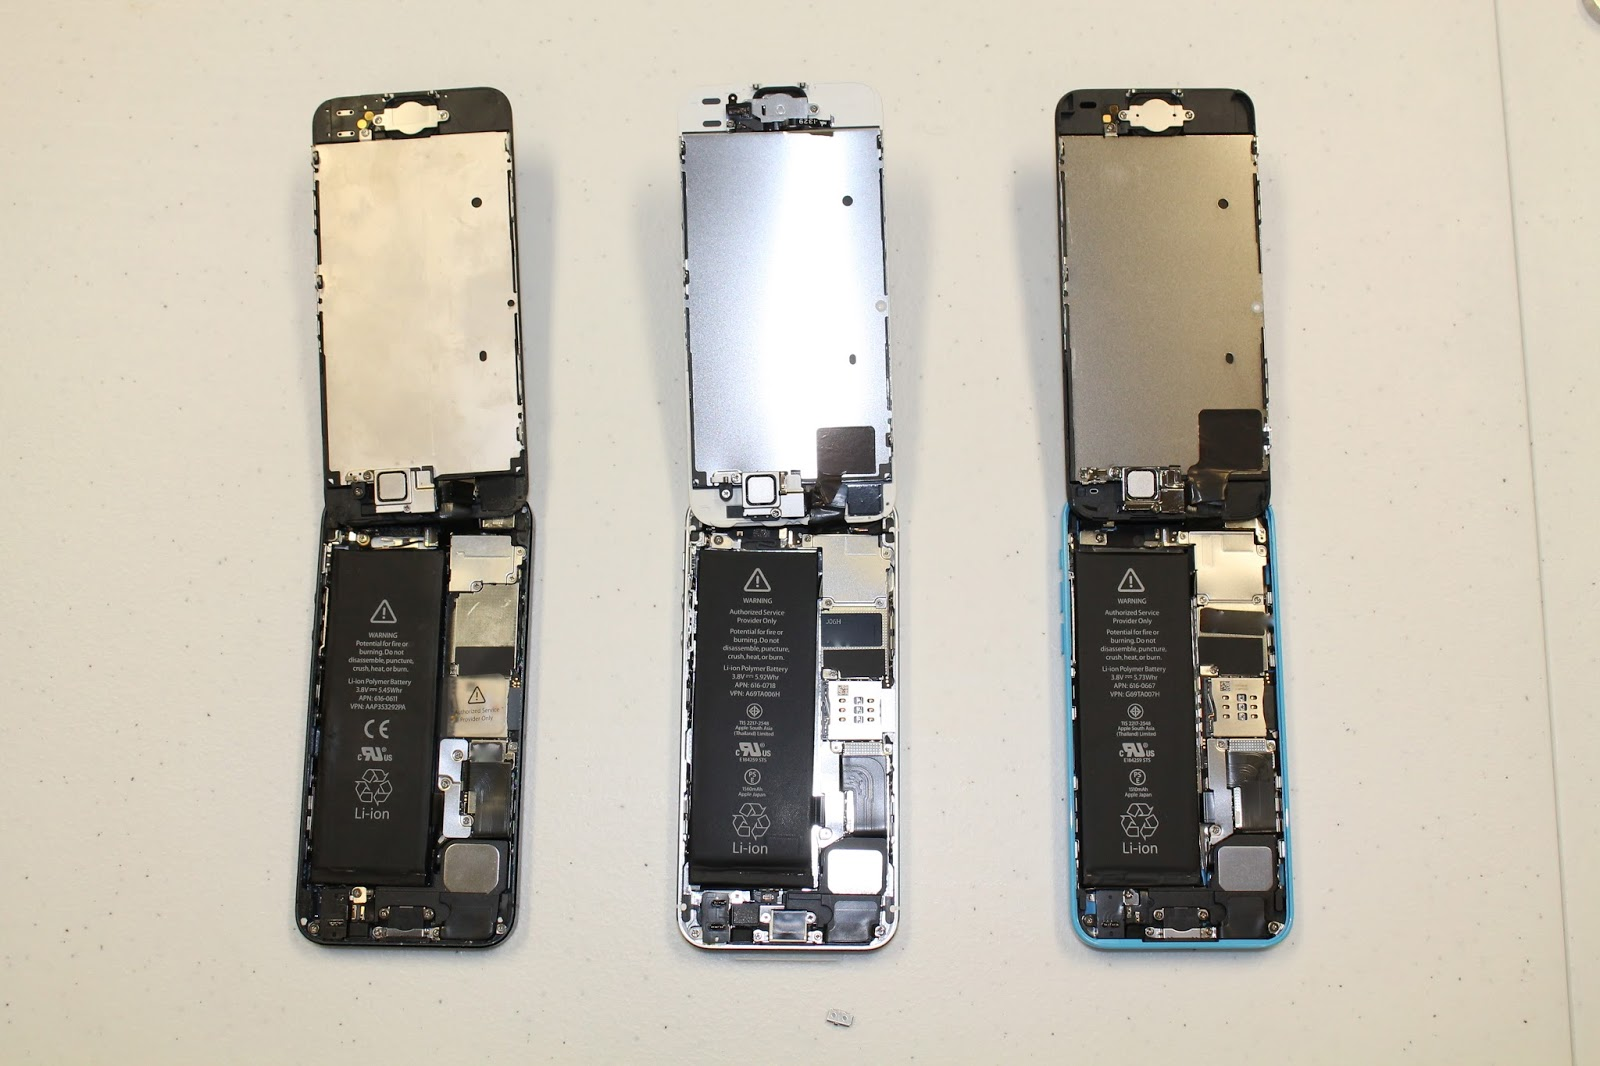 iExpert Australia - Teardown iPhone 5/iPhone 5C/iPhone 5S